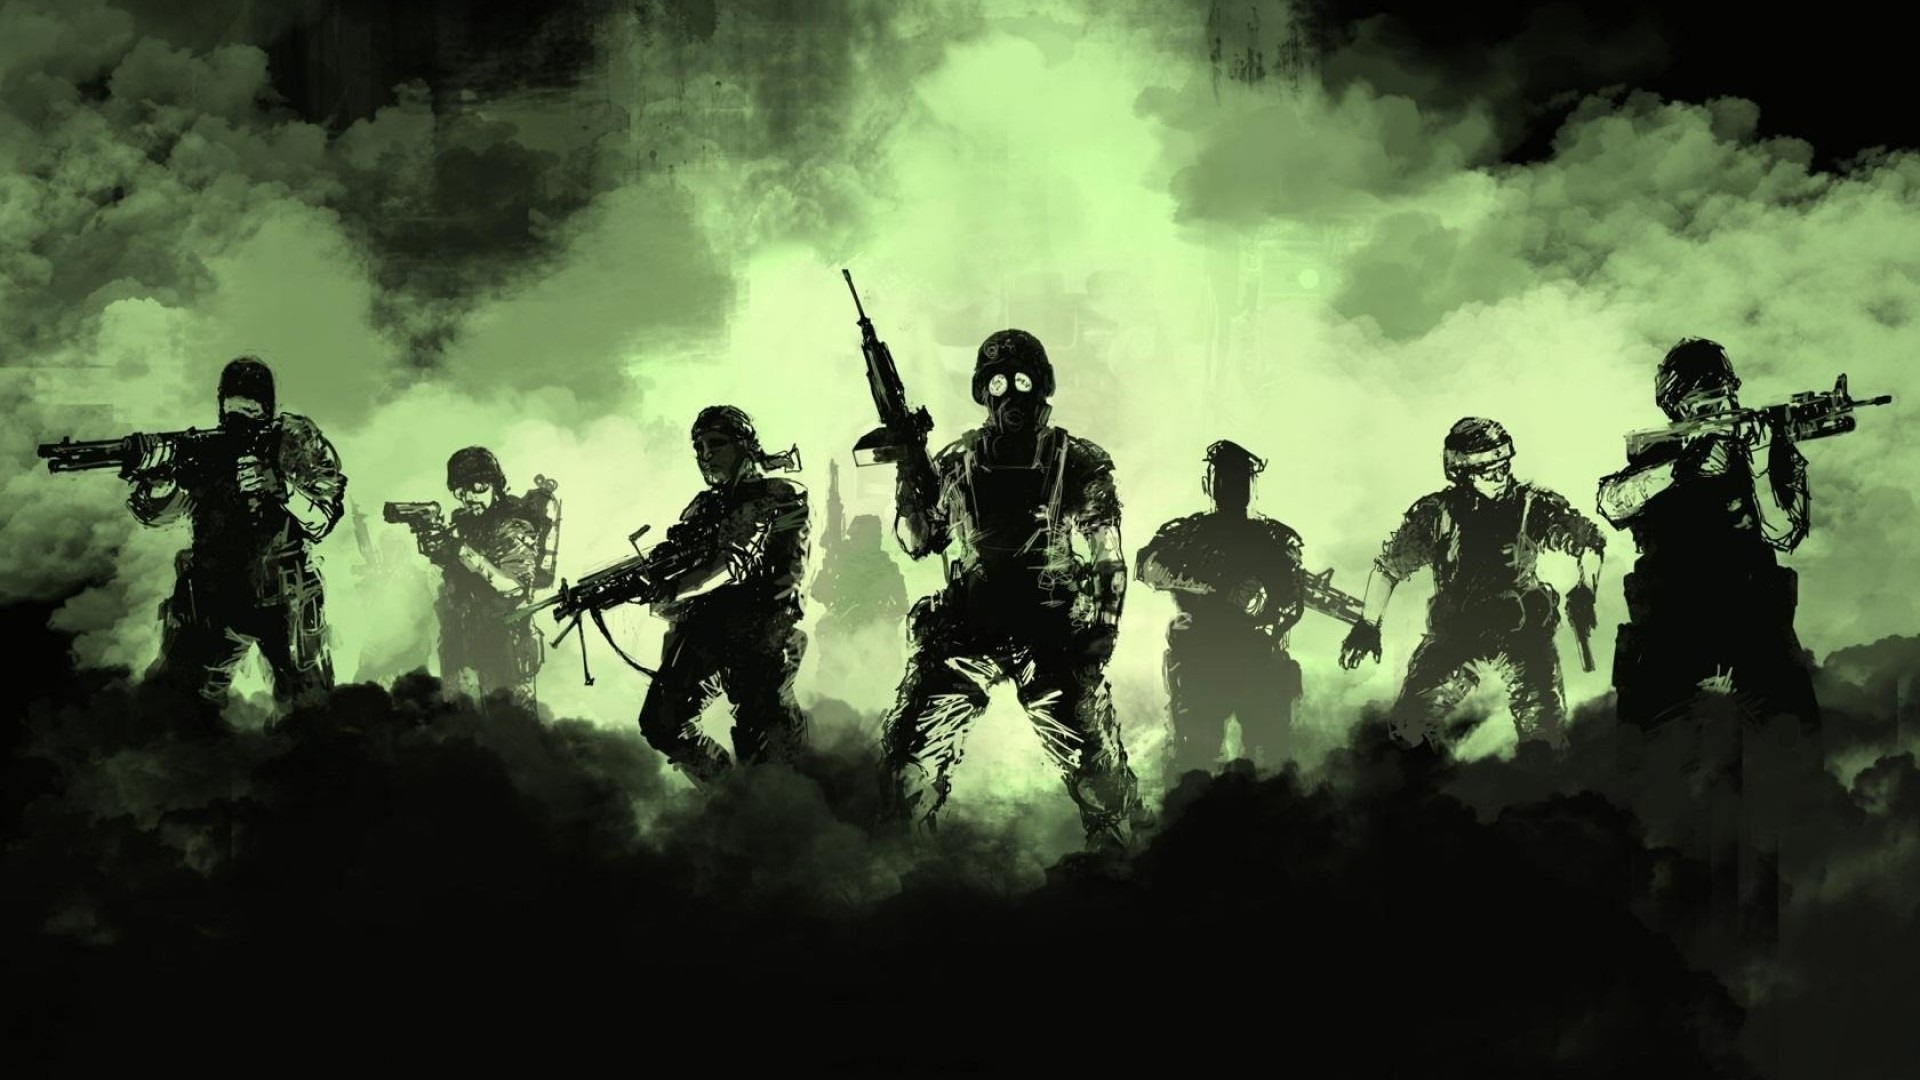 Army wallpaper Great HD Collection 1920x1080